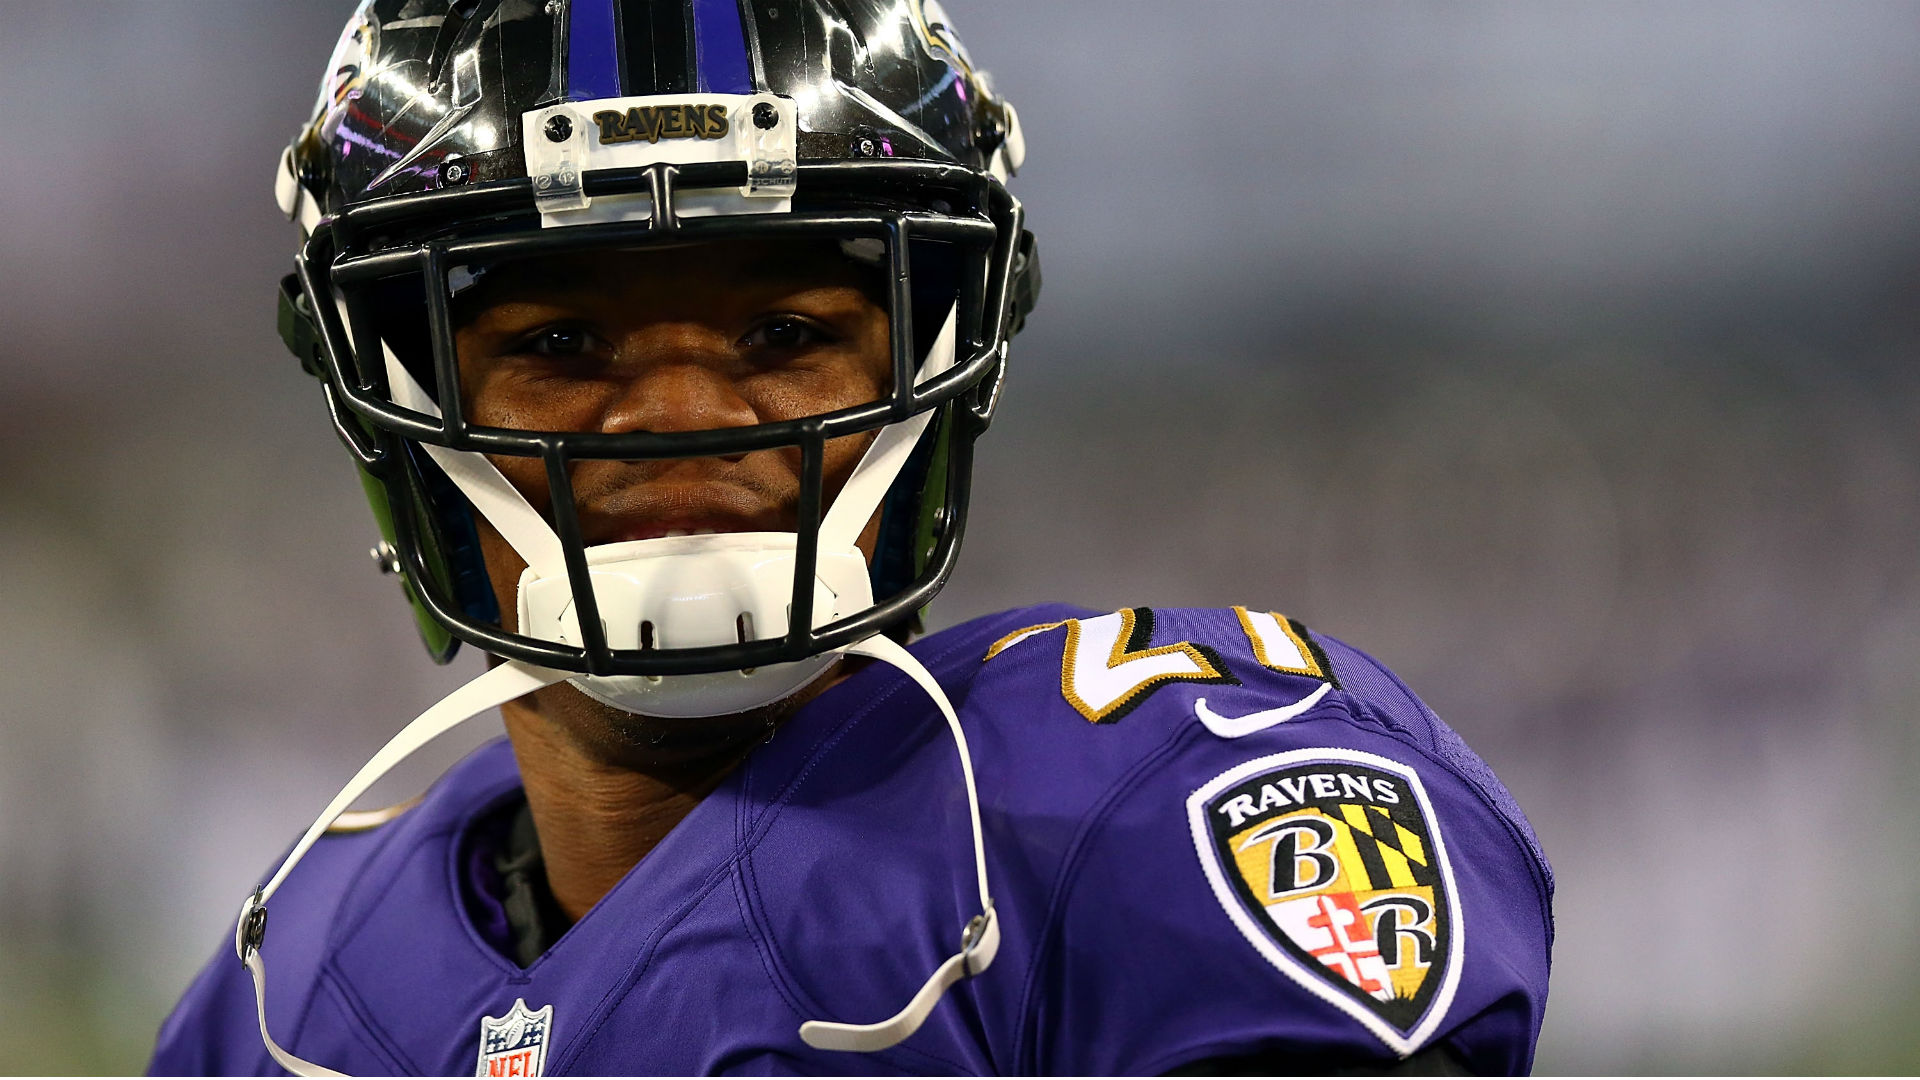 Former Ravens running back Ray Rice